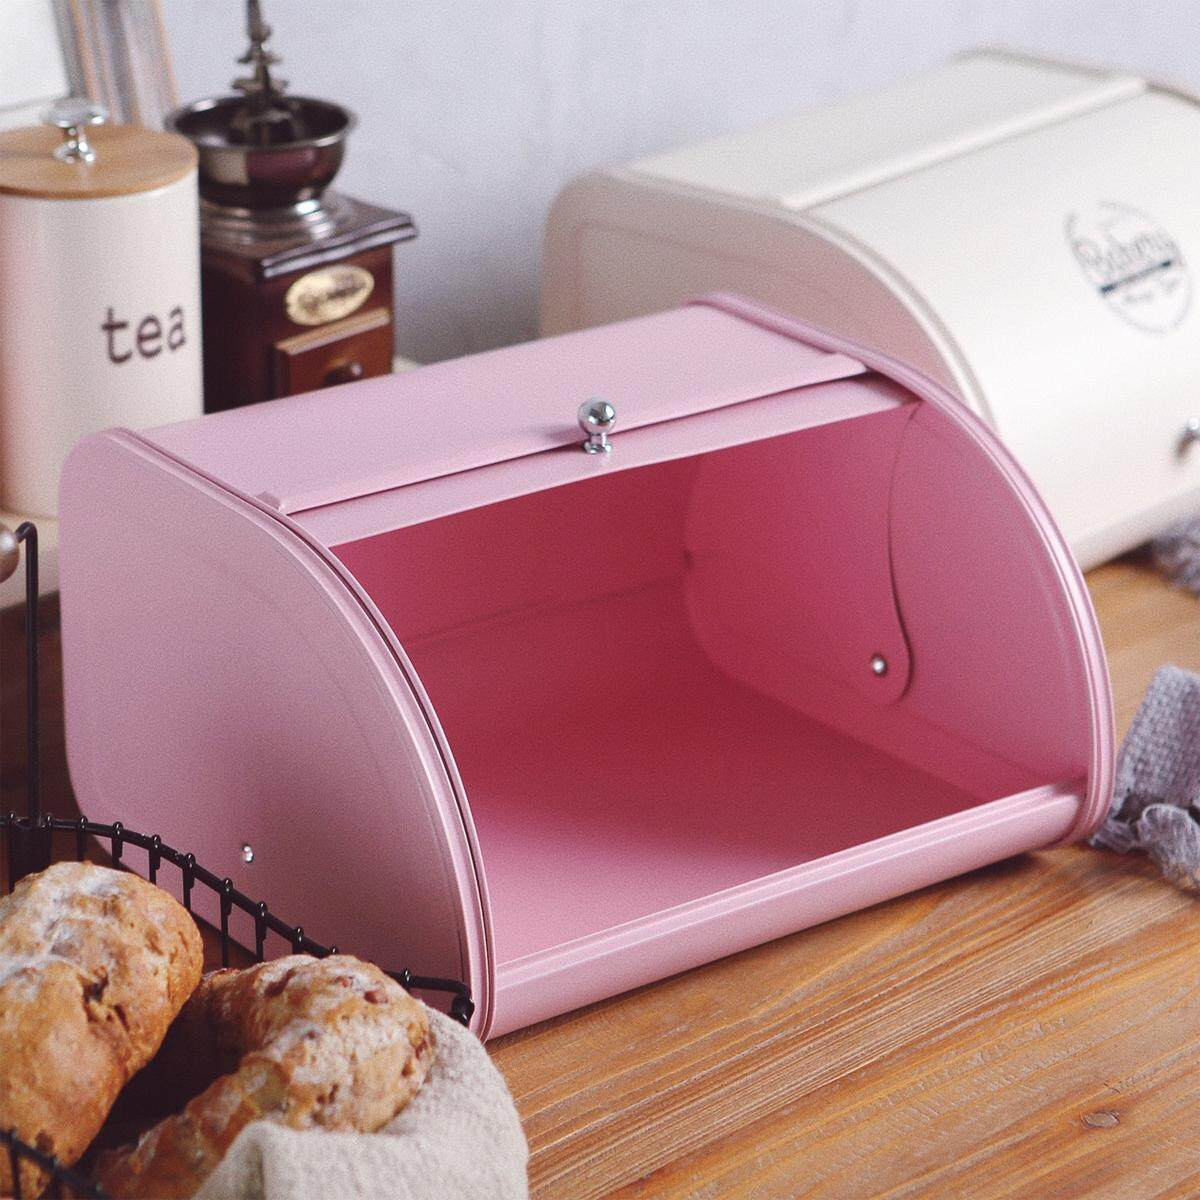 Buy White Pink New Bread Box Storage Bin Keeper Food Pastries Kitchen Container Intl On China